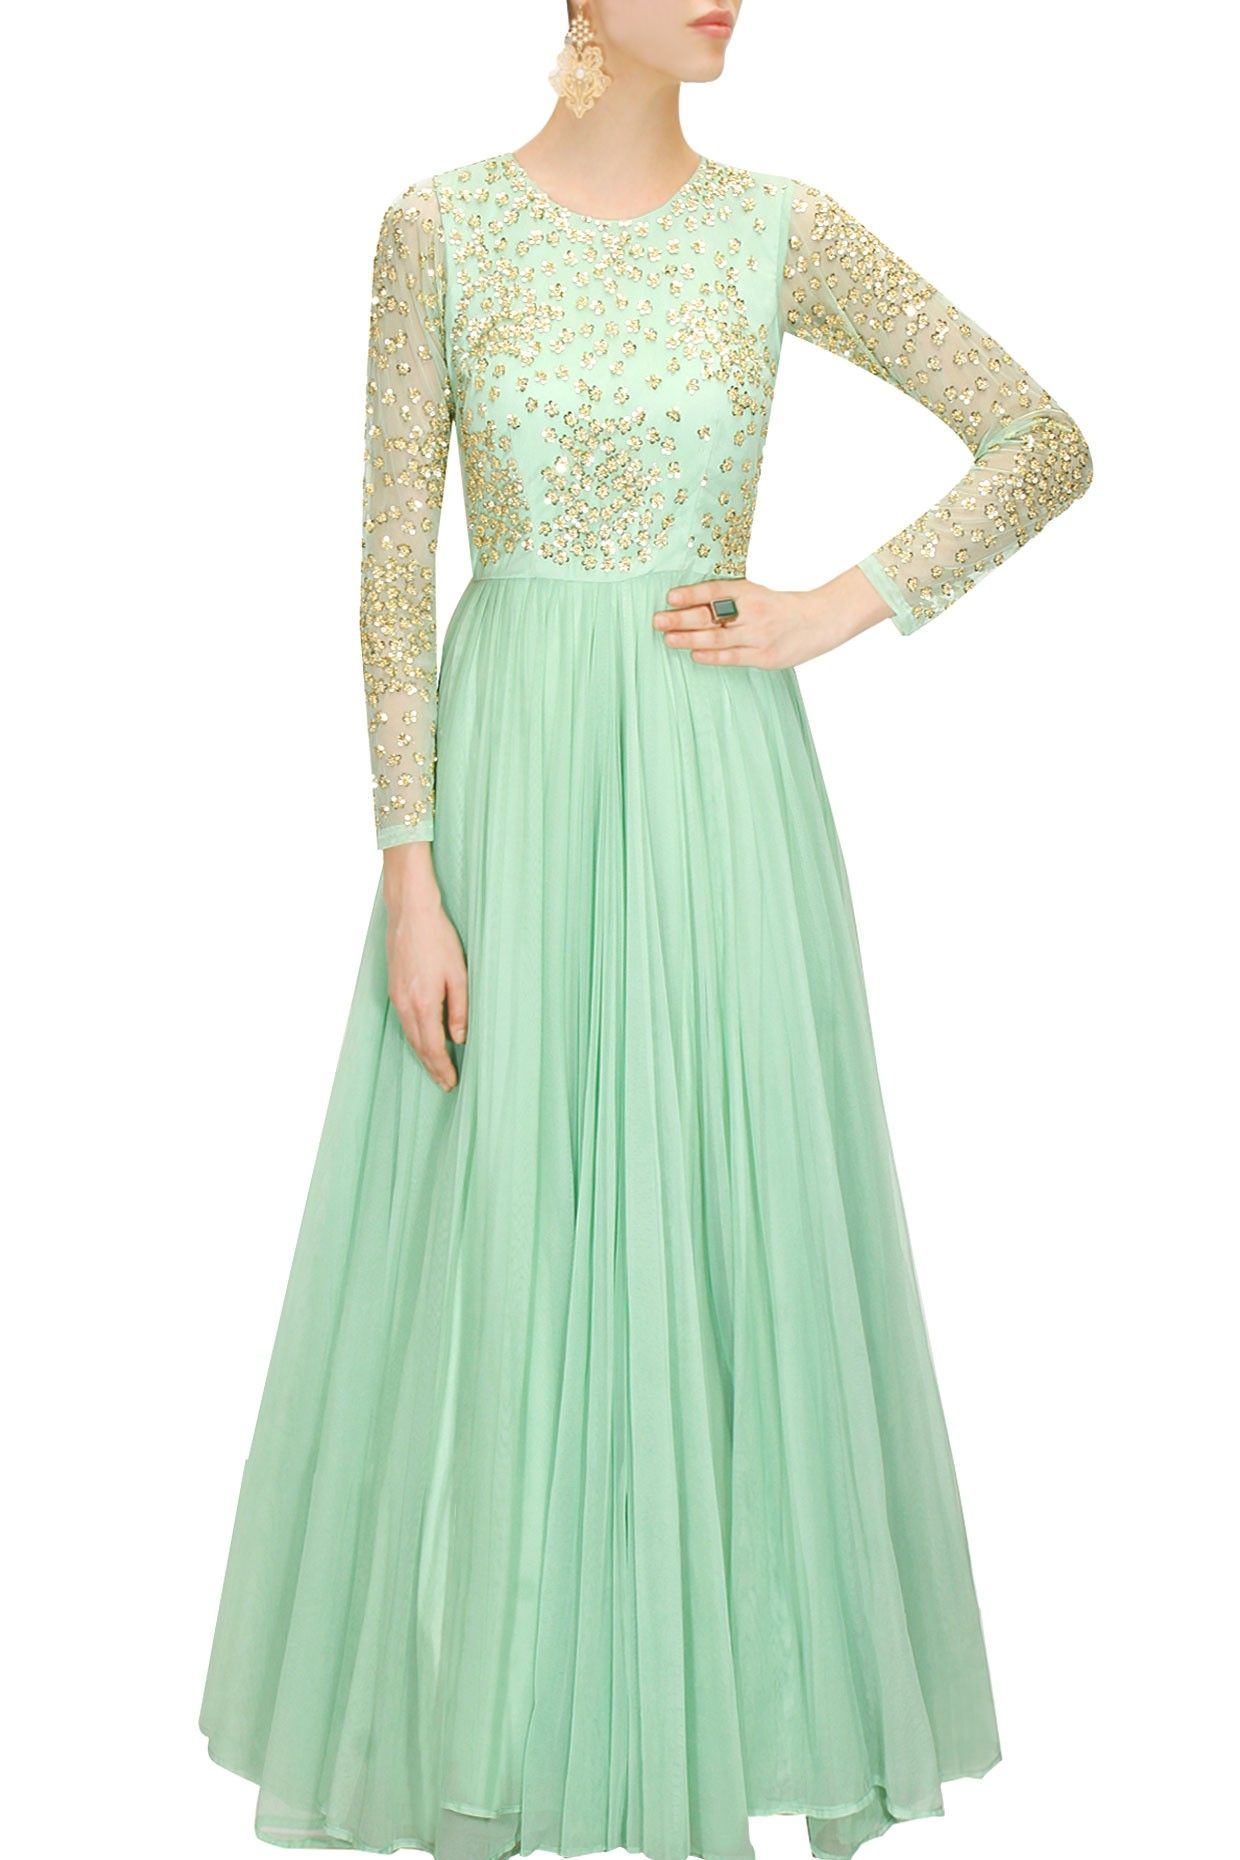 Dress to wear at a wedding  Astha Narang  designs  Pinterest  Indian fashion Couture and Gowns